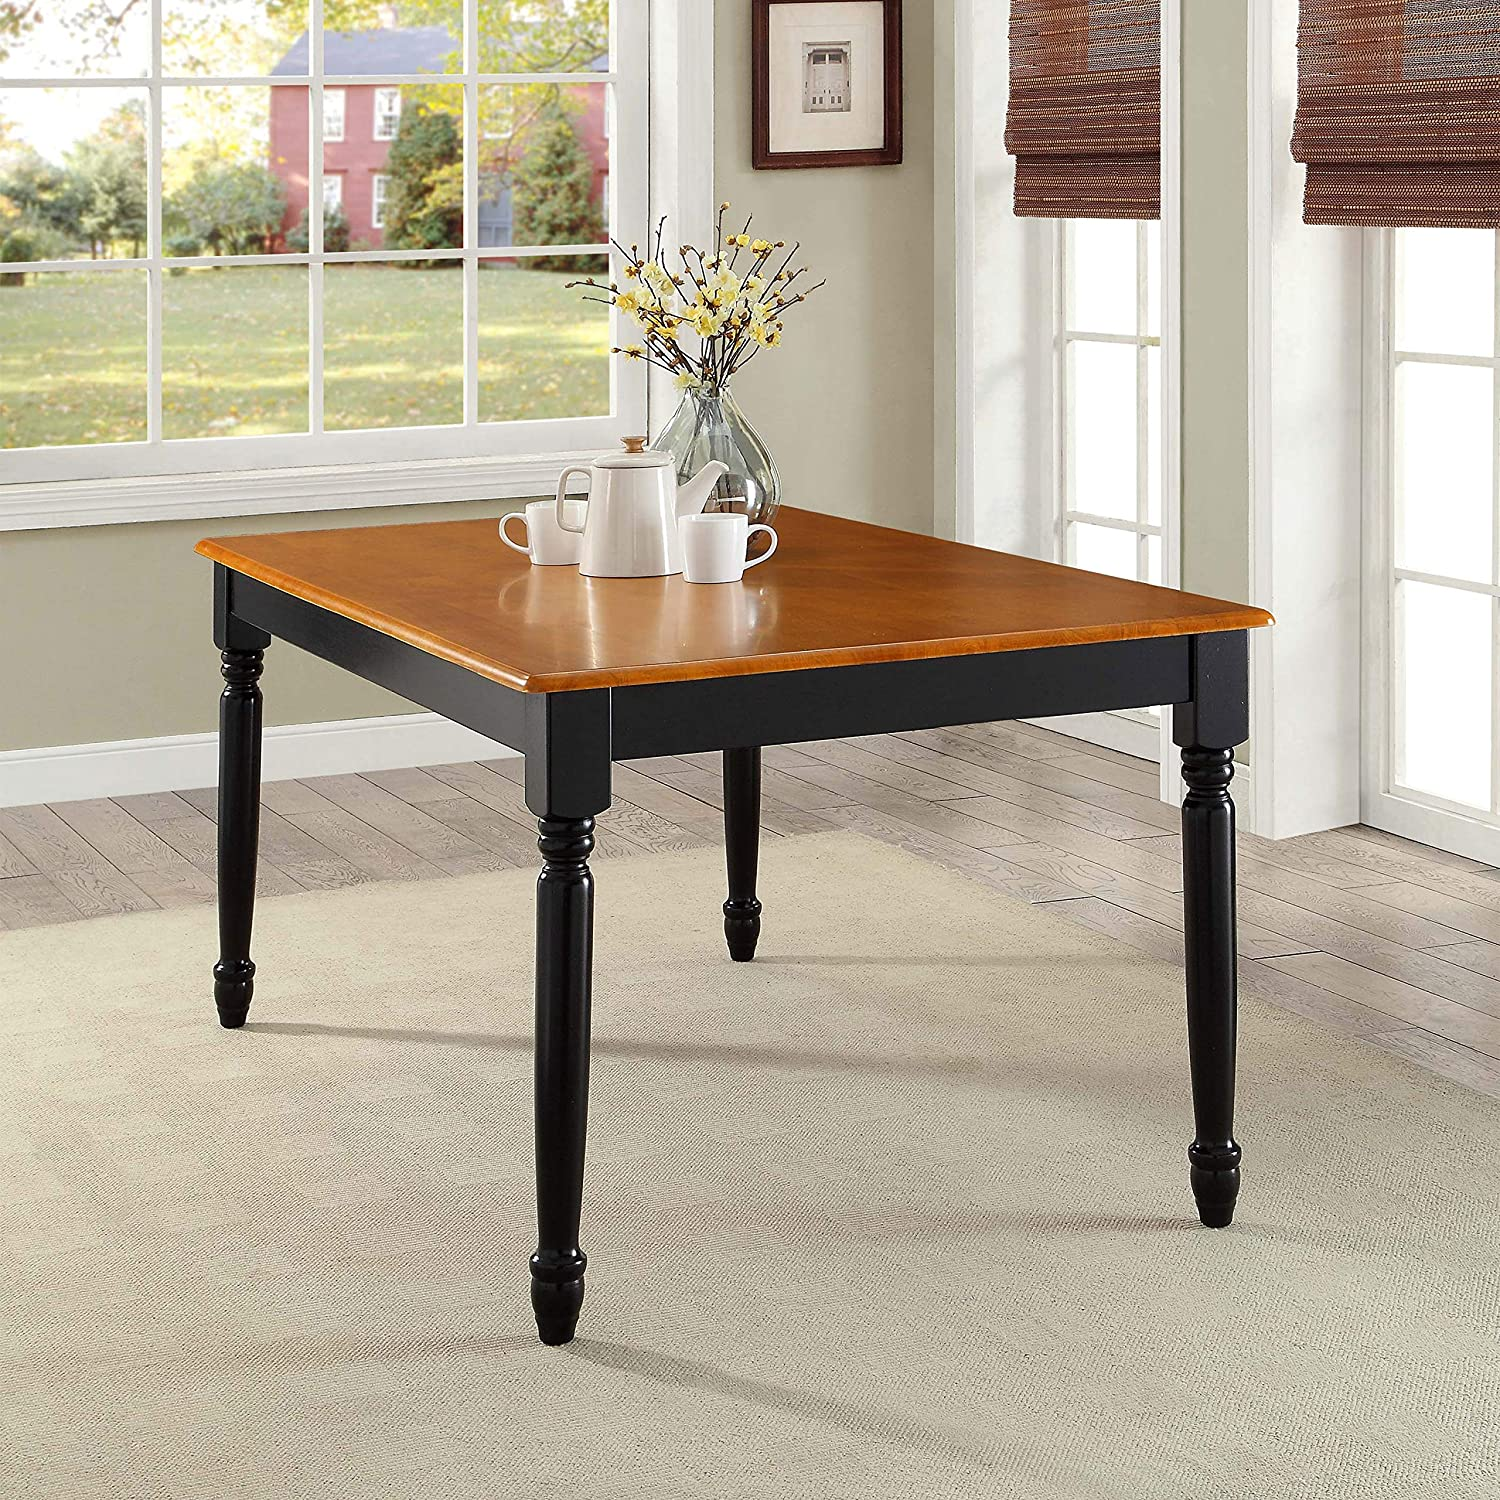 Better Homes and Gardens Autumn shop Bla Lane Translated Farmhouse Dining Table